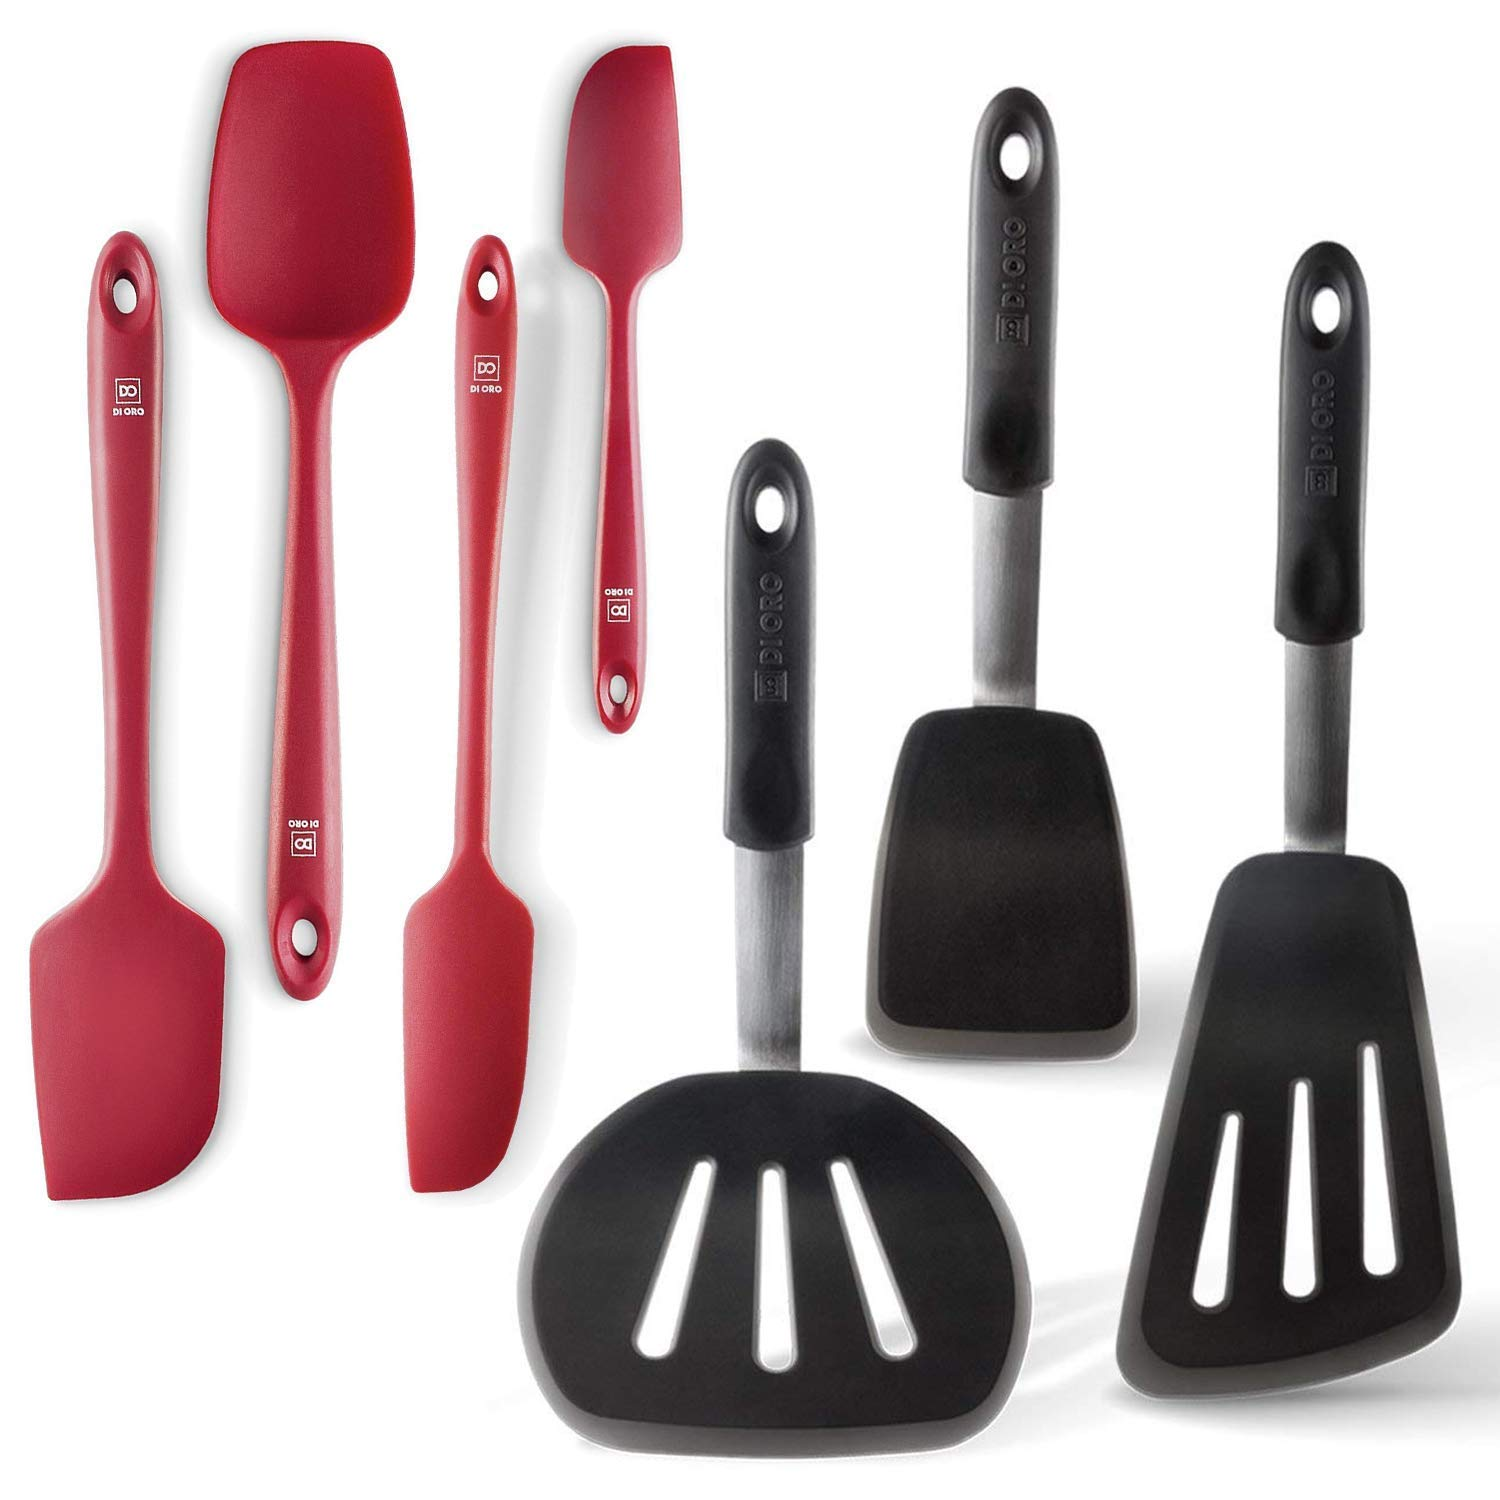 DI ORO Chef's Choice 7-Piece Spatula Set (RED) (Red 7-Pc Set)